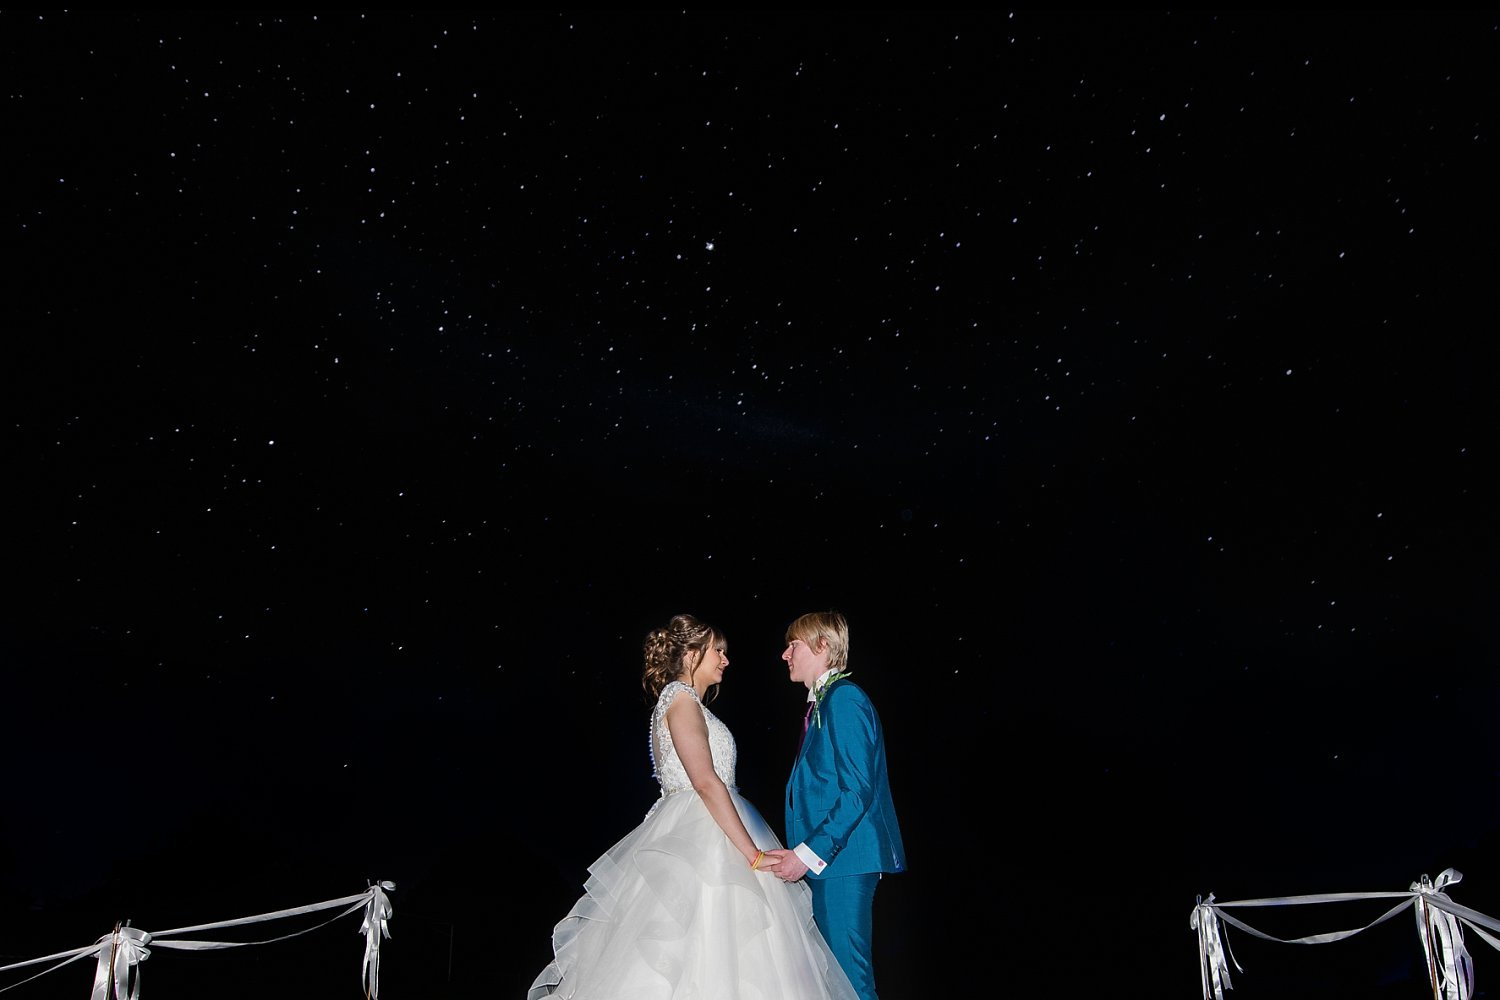 Petersfield Wedding Photography - last photo of the day, bride and groom photo on dark, clear sky